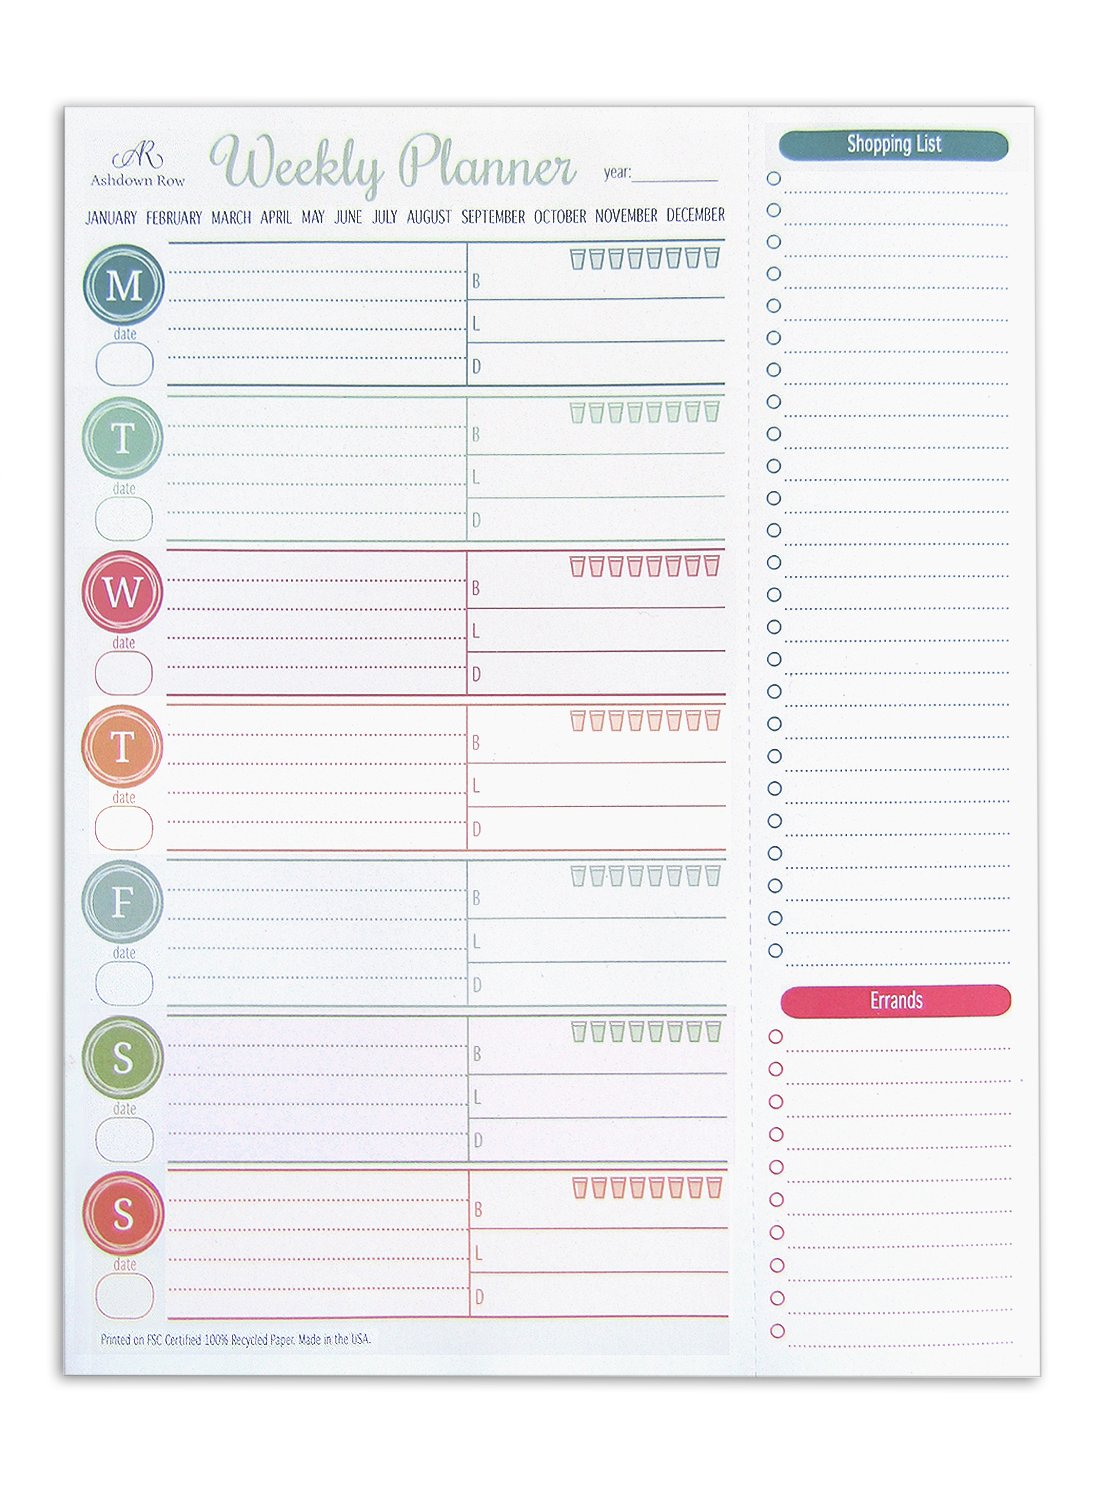 """Ashdown Row Weekly Planner Pad (8.5"""" x 11"""") Recycled Tear-Off Sheets with Perforated Shopping and Errands List, Made in the USA"""